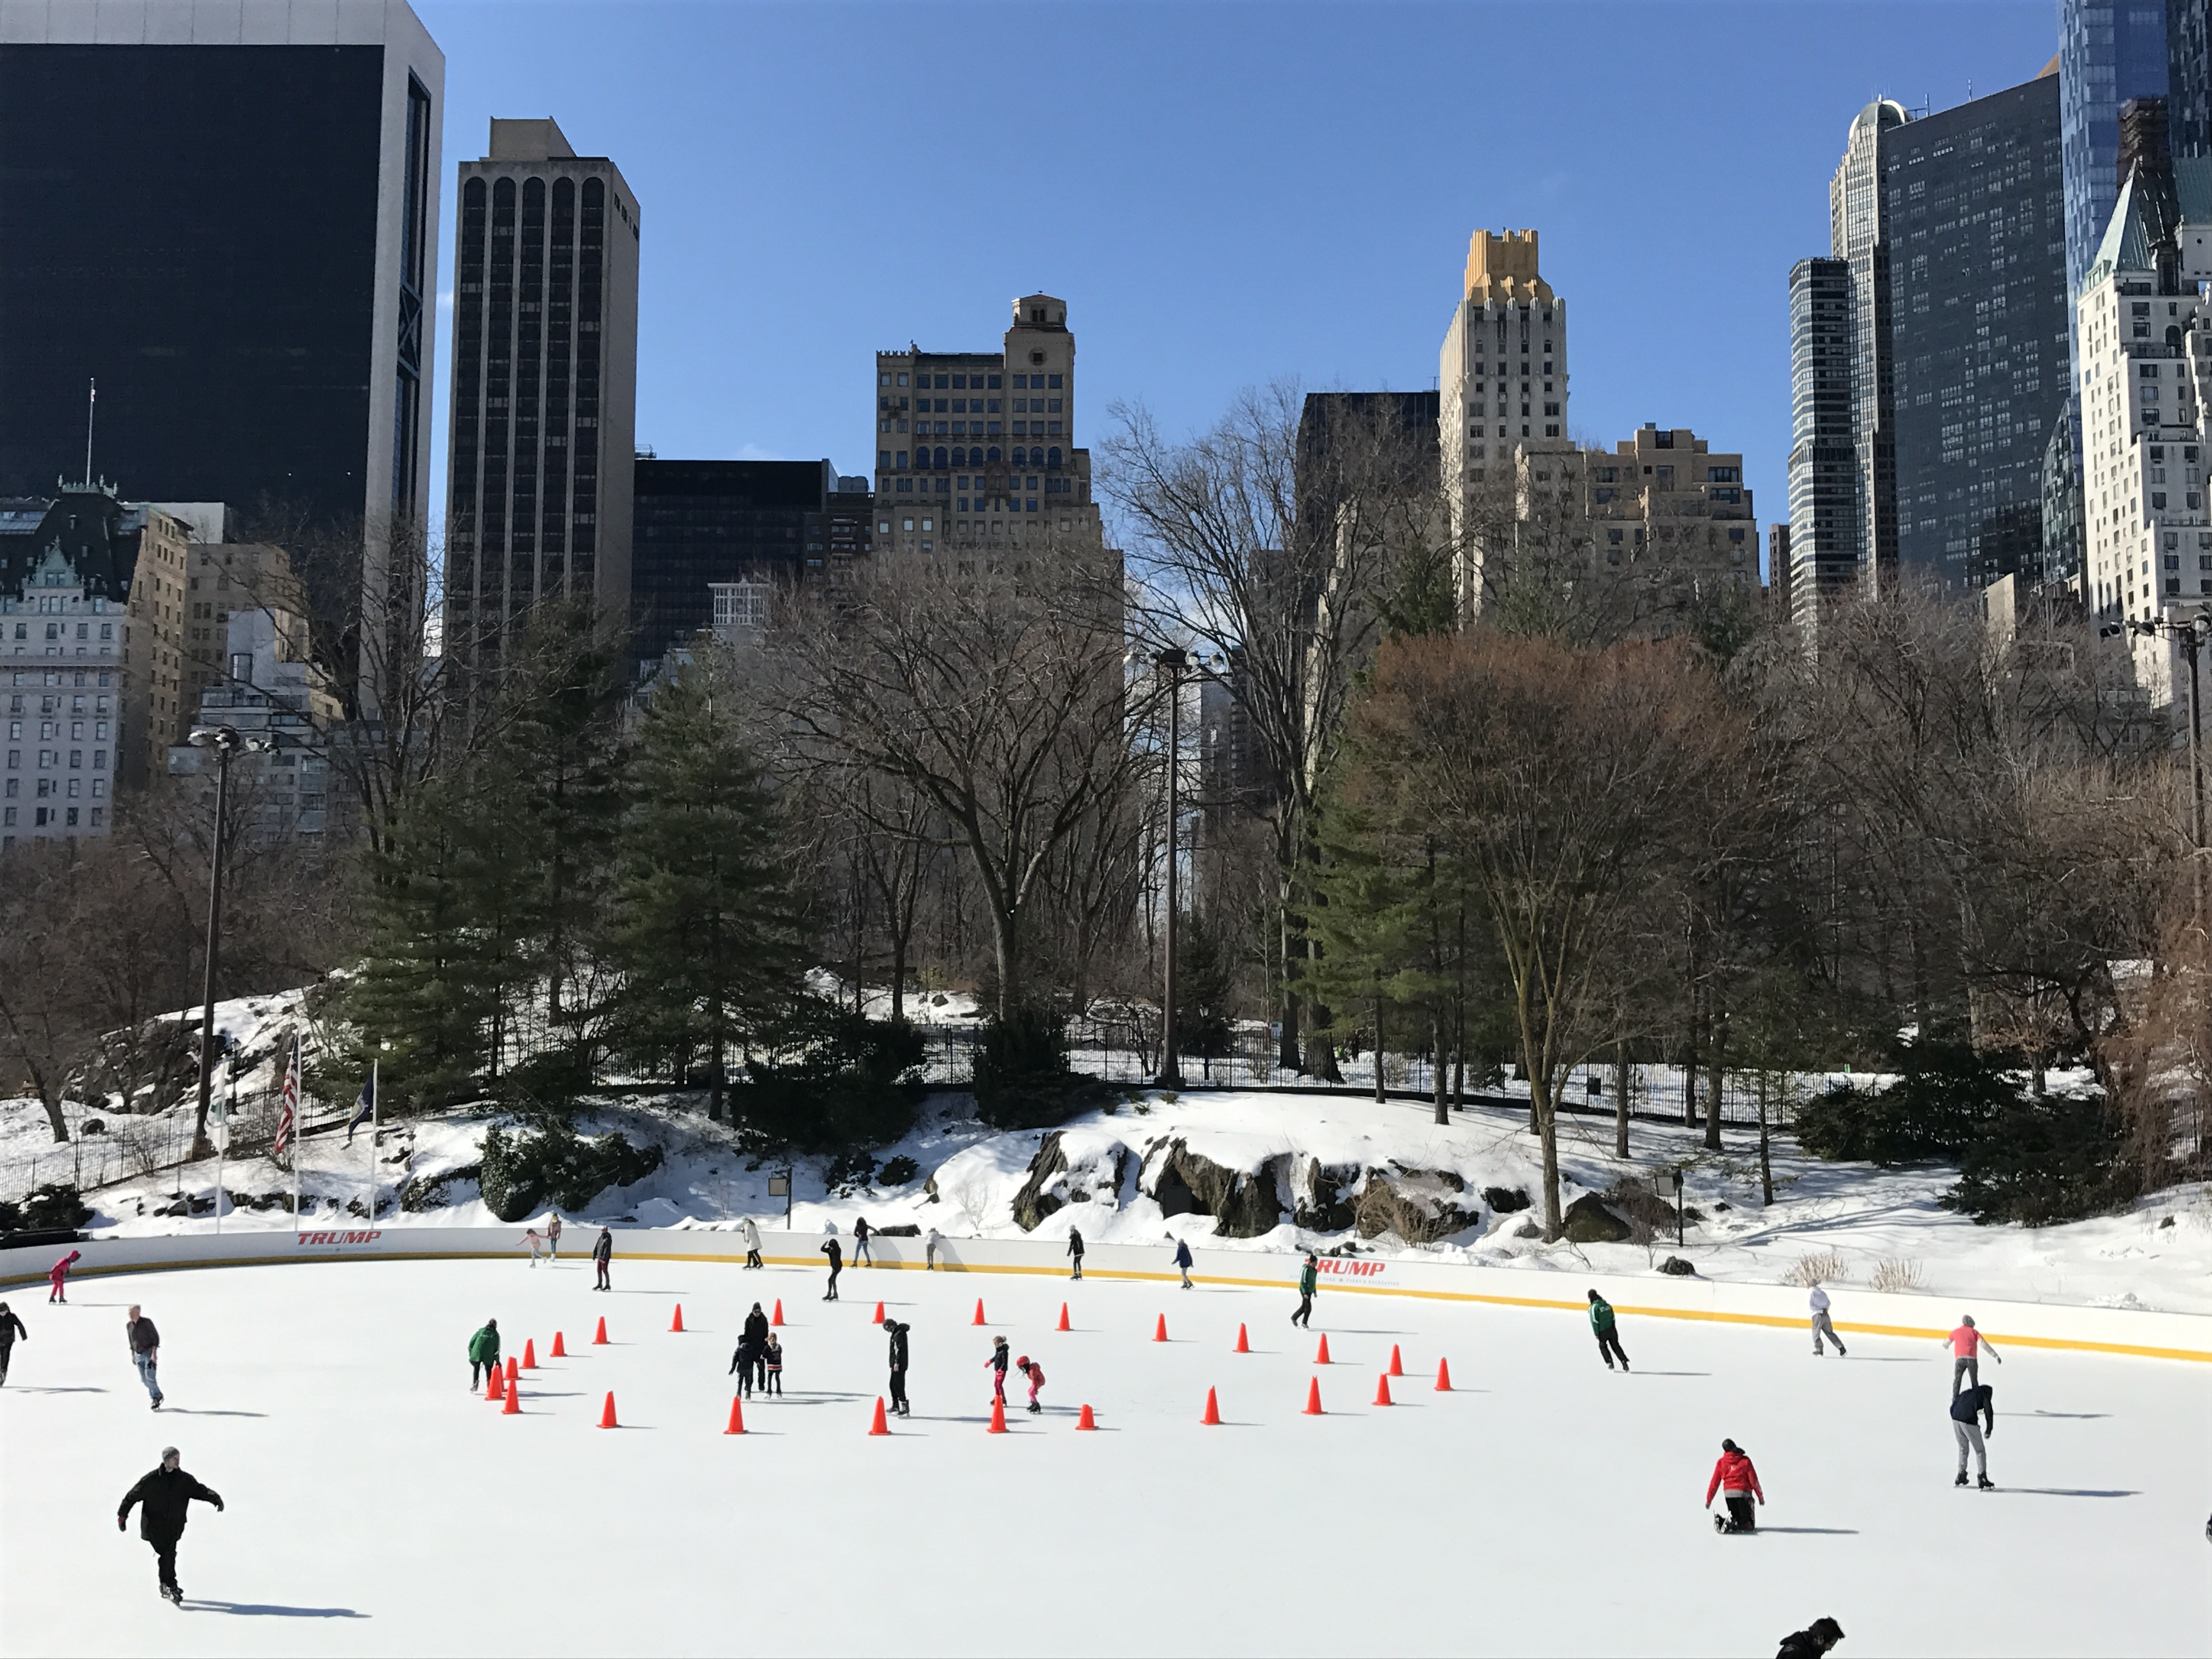 Ice skating in Central Park Wollman Rink